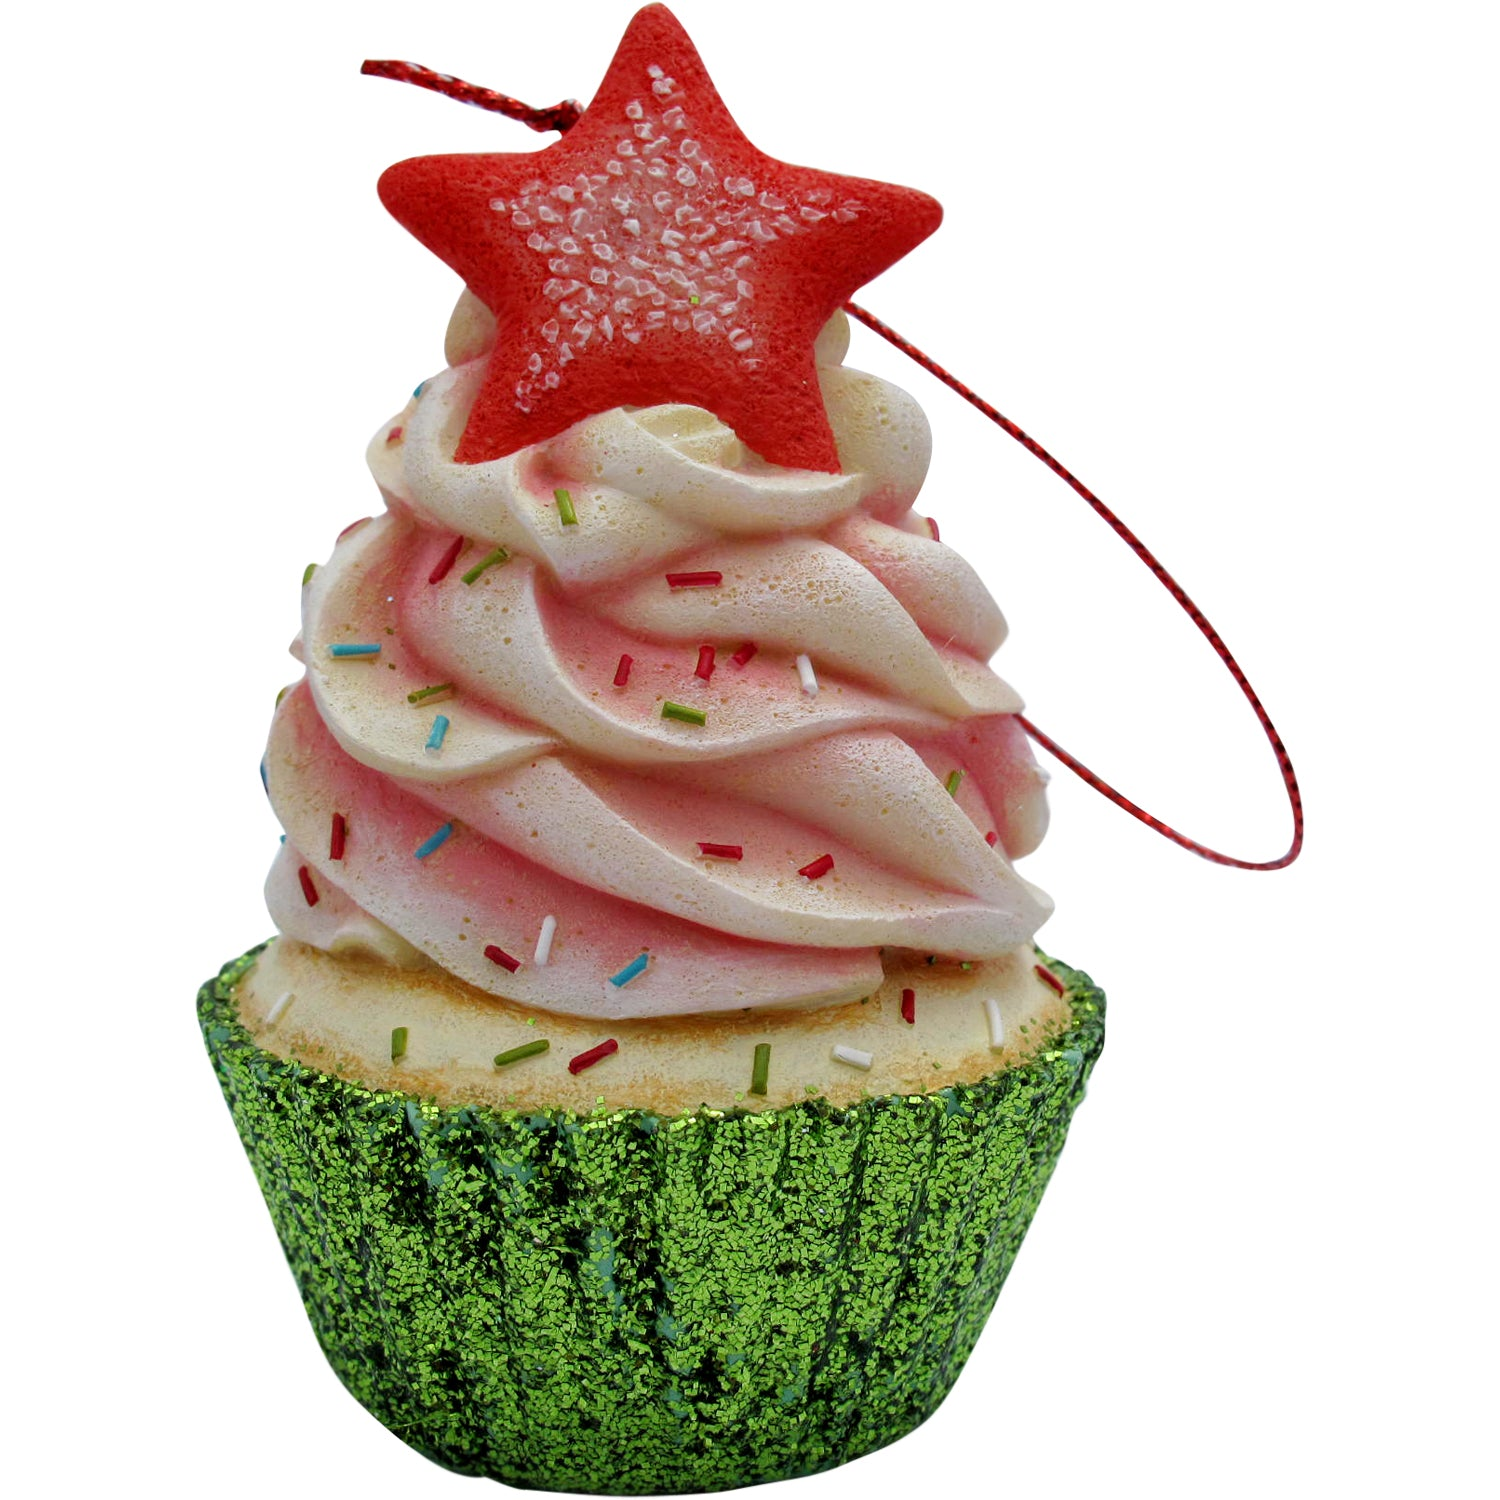 Pink Star Top Cupcake Christmas Tree Ornament